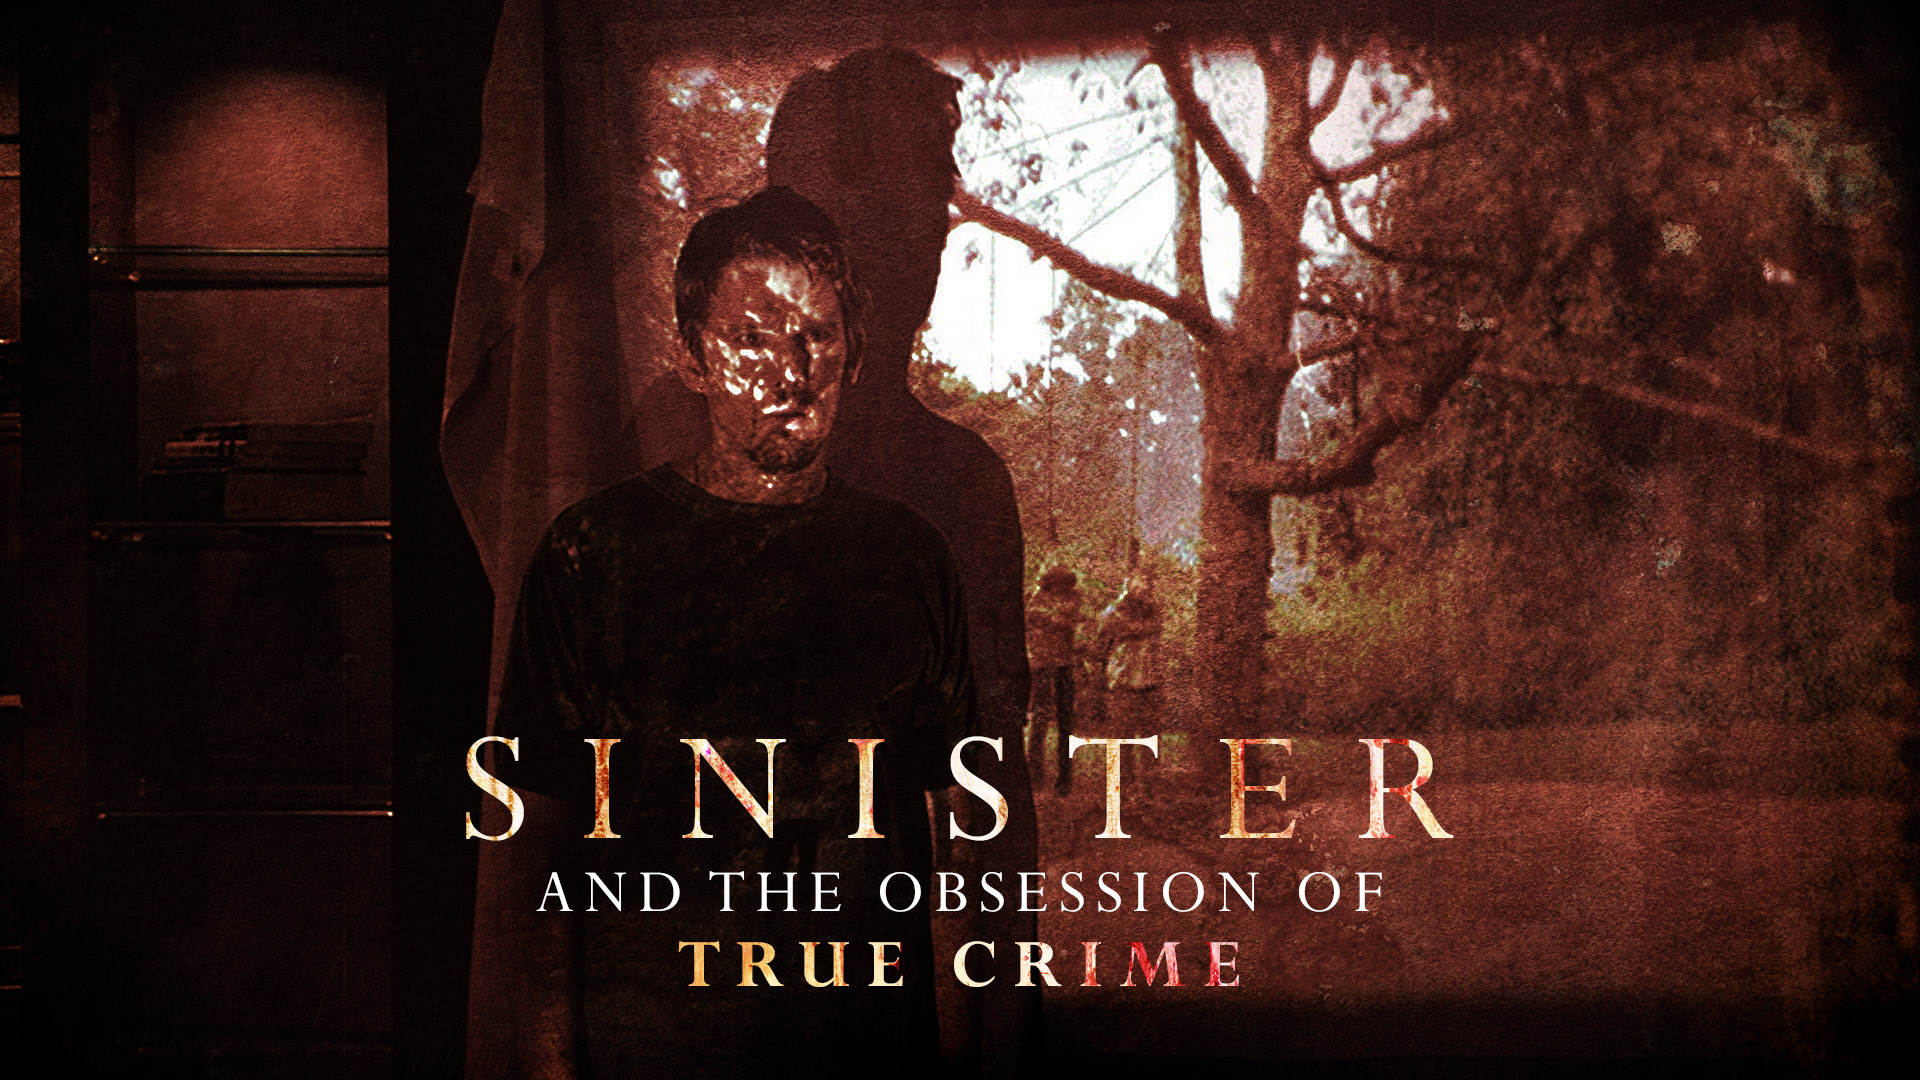 'Sinister' and the Obsession of True Crime